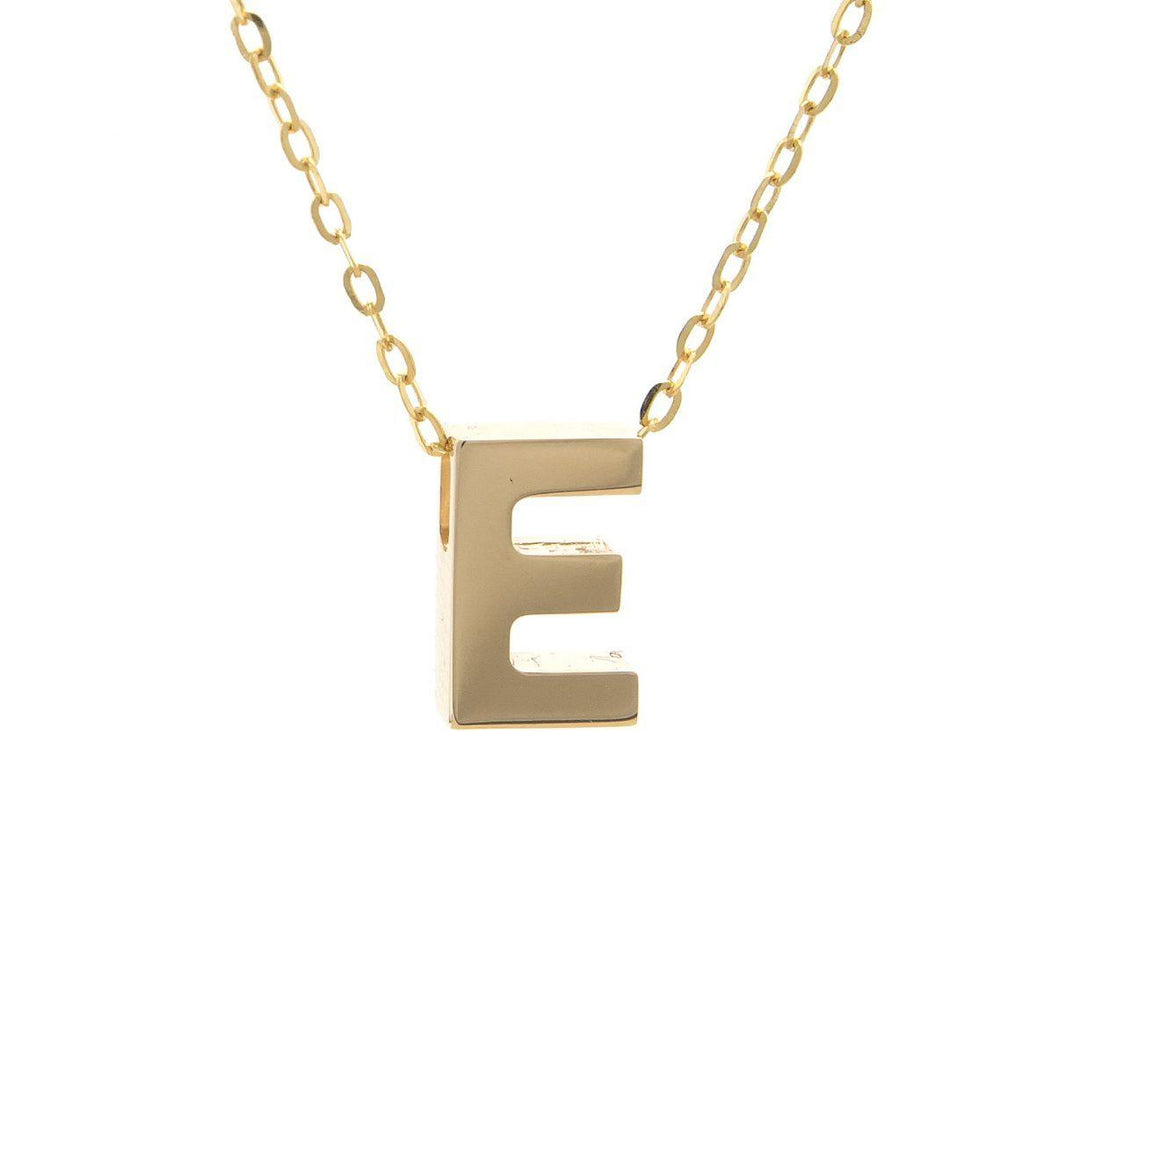 14KT yellow gold initial E necklace